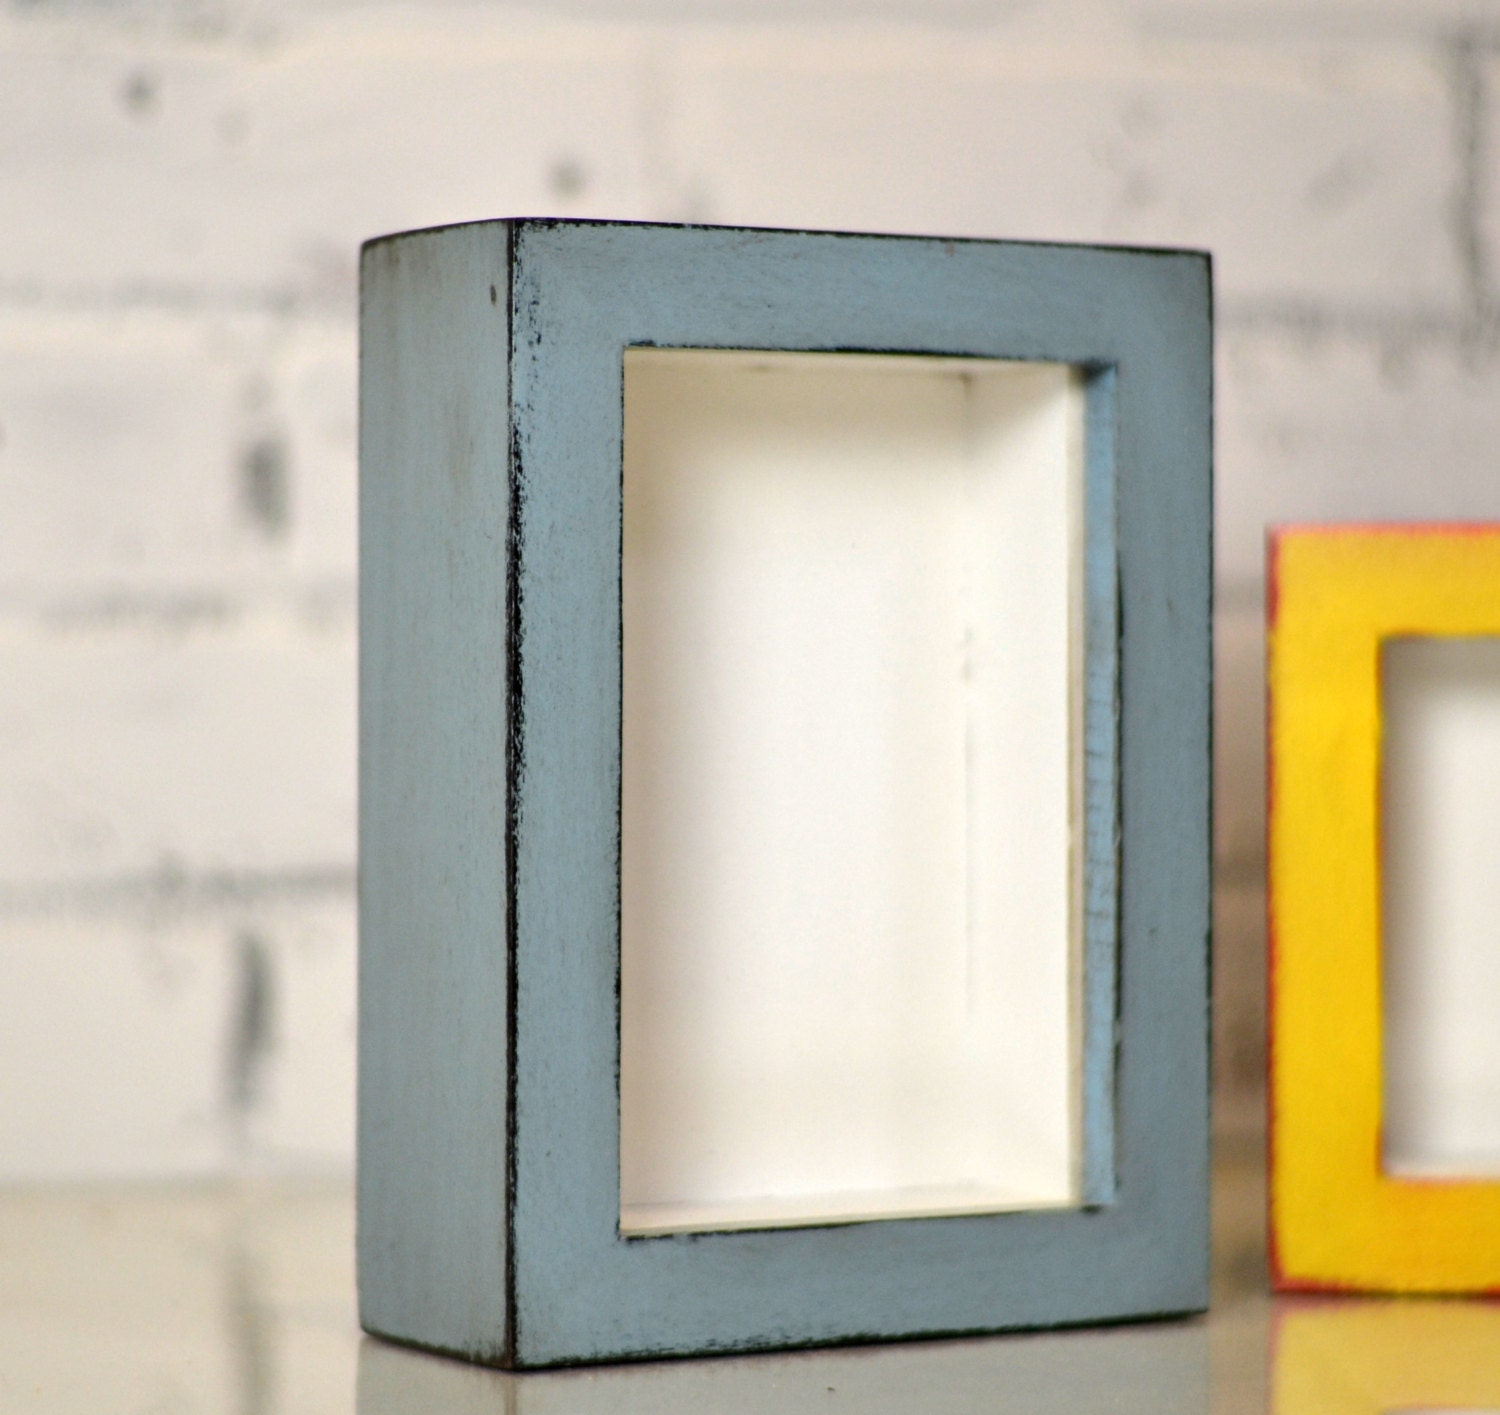 Handmade small shadow box frame holds up to 4 x 6 x 125 inches handmade small shadow box frame holds up to 4 x 6 x 125 inches deep in finish color of your choice 4 x 6 shadow box frame from signedandnumbered on jeuxipadfo Image collections